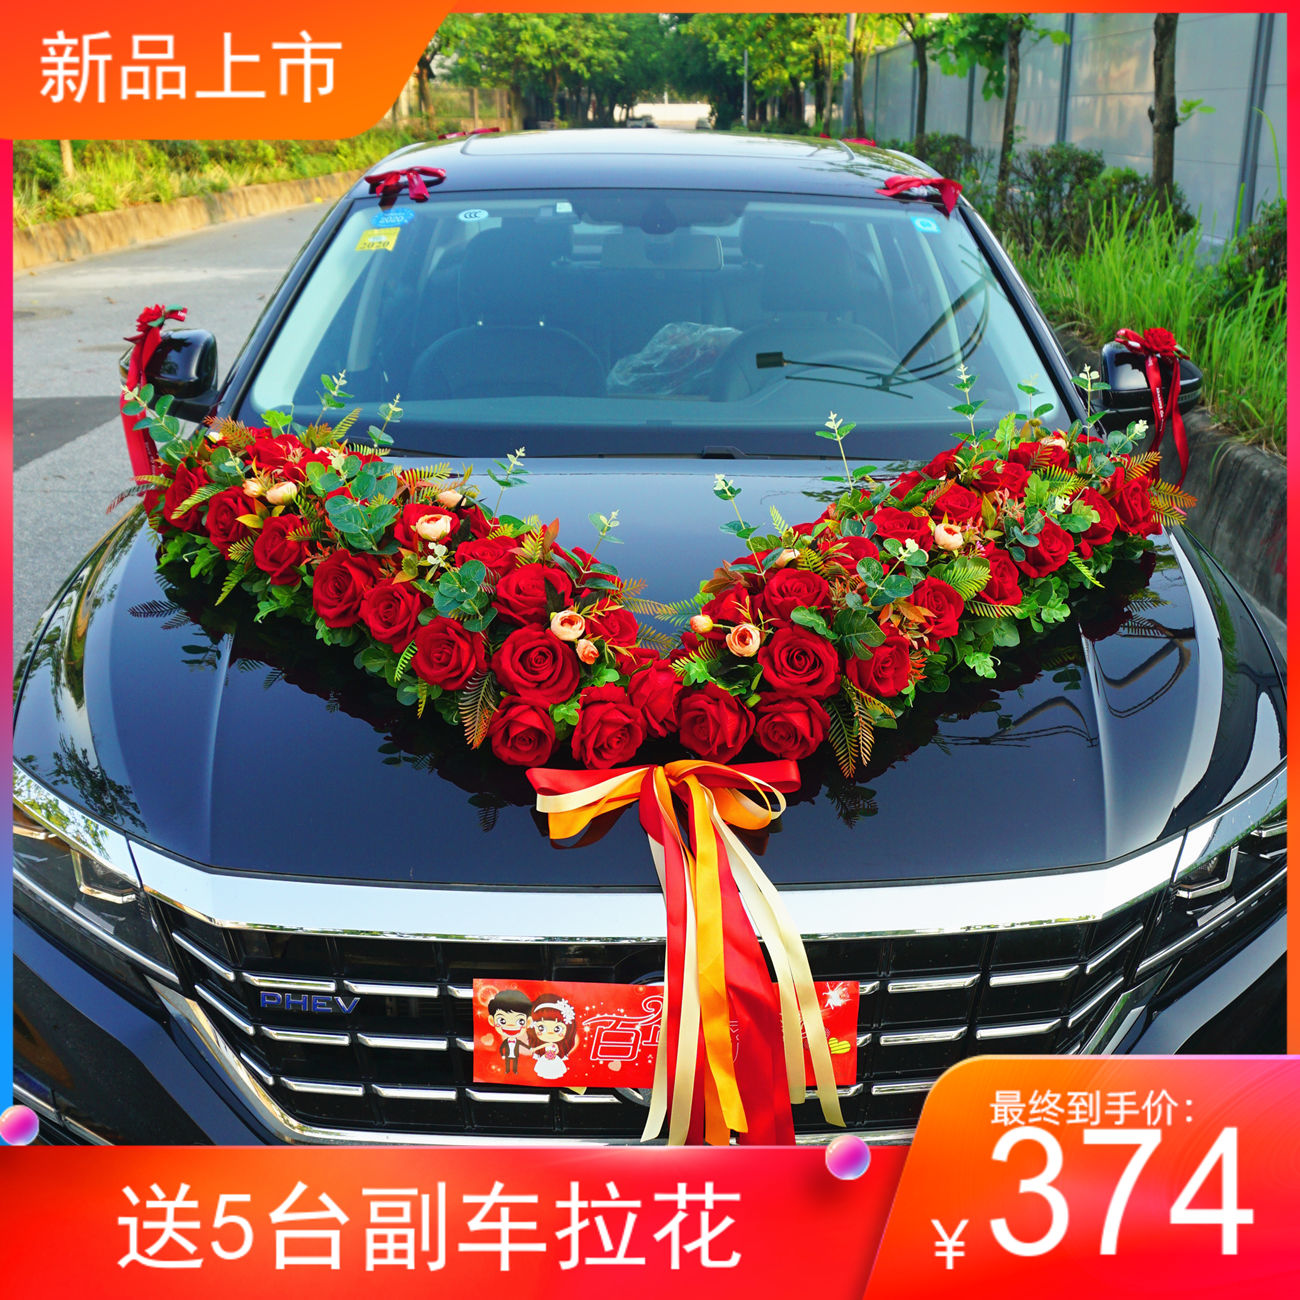 Big v Sen main knot wedding car decoration car head flower supplies set simulation flower car wedding pull flower full set of creative